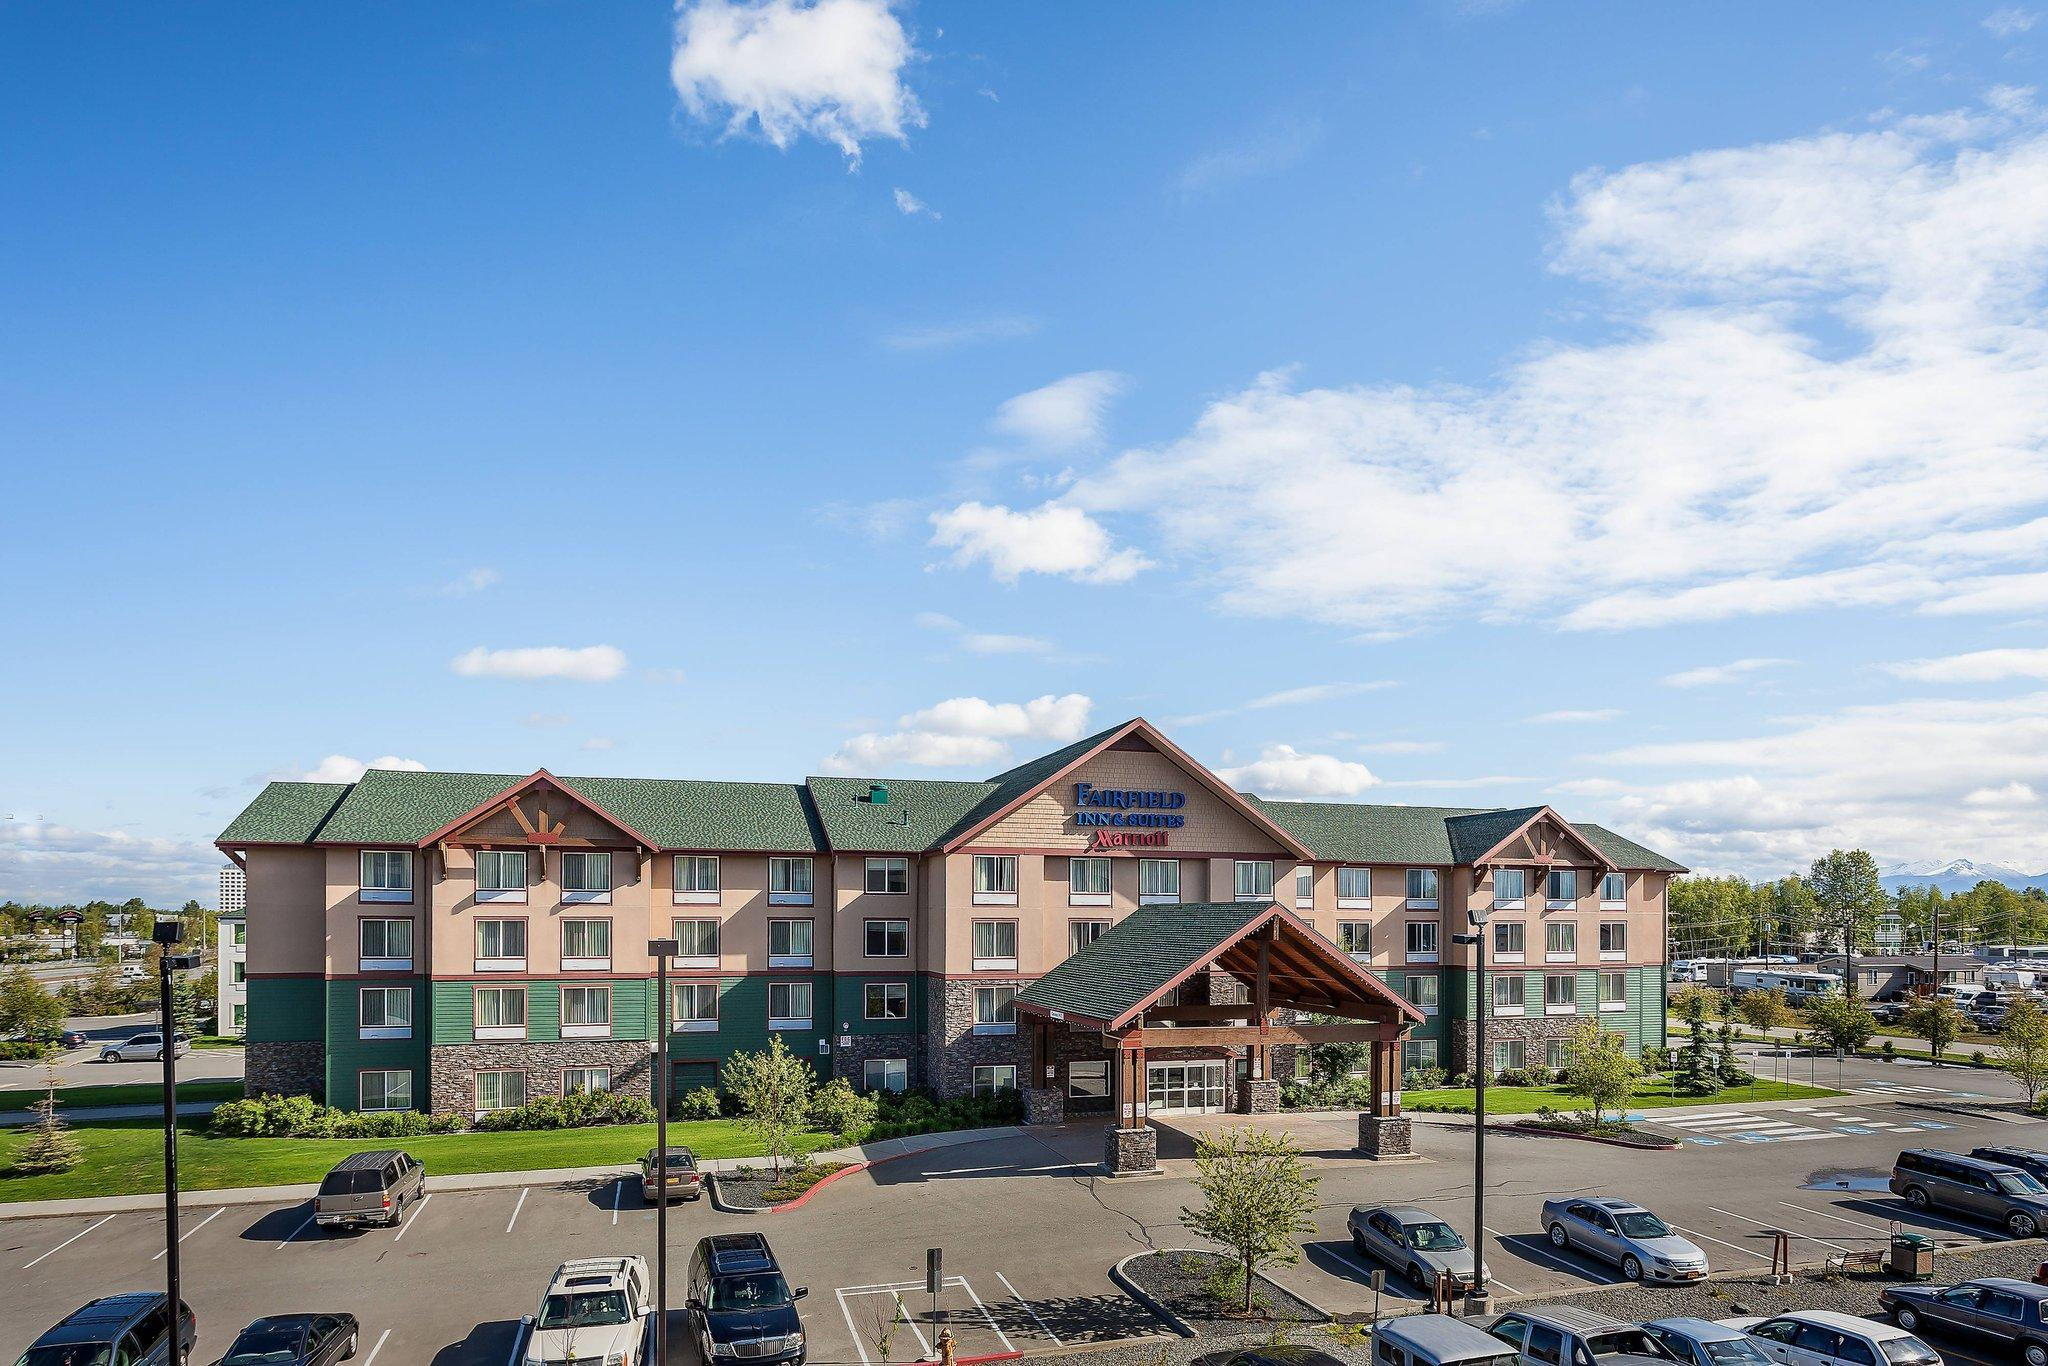 Fairfield Inn & Suites Anchorage Midtown, Anchorage